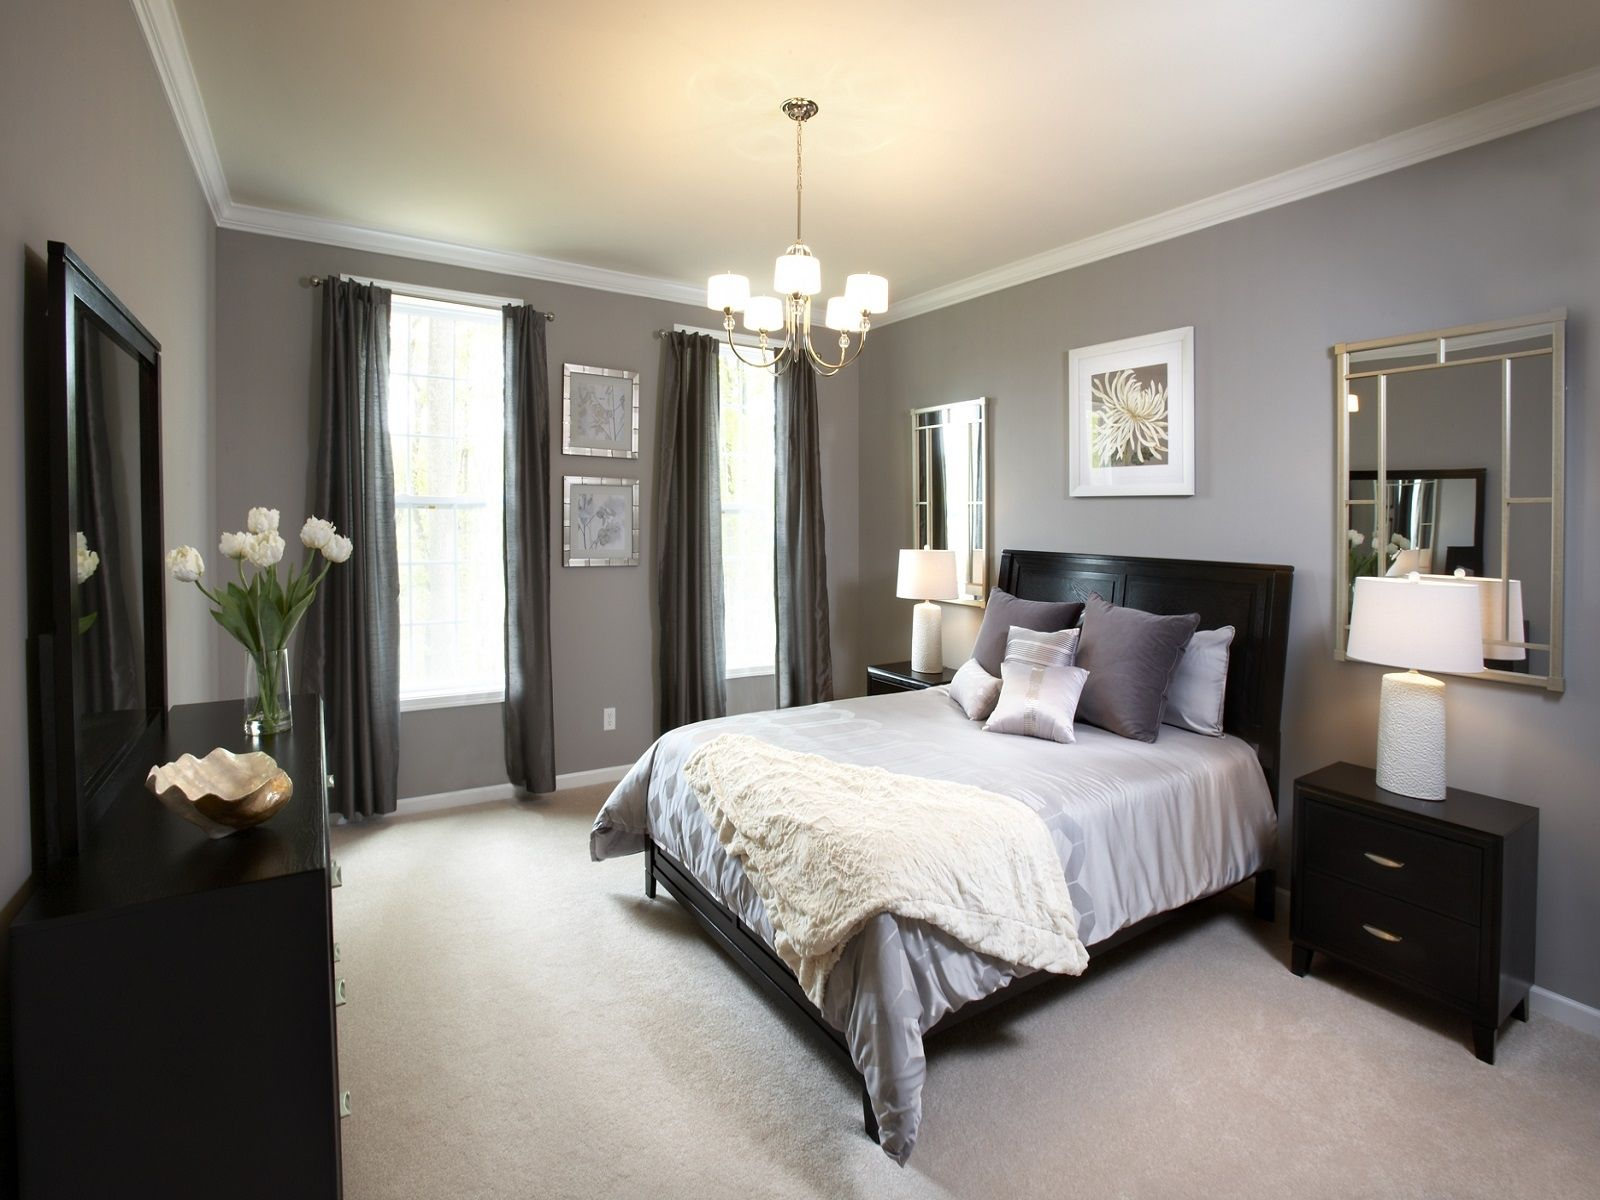 Brilliant Decorating Bedroom Ideas With Black Bed And Dark Dresser ...